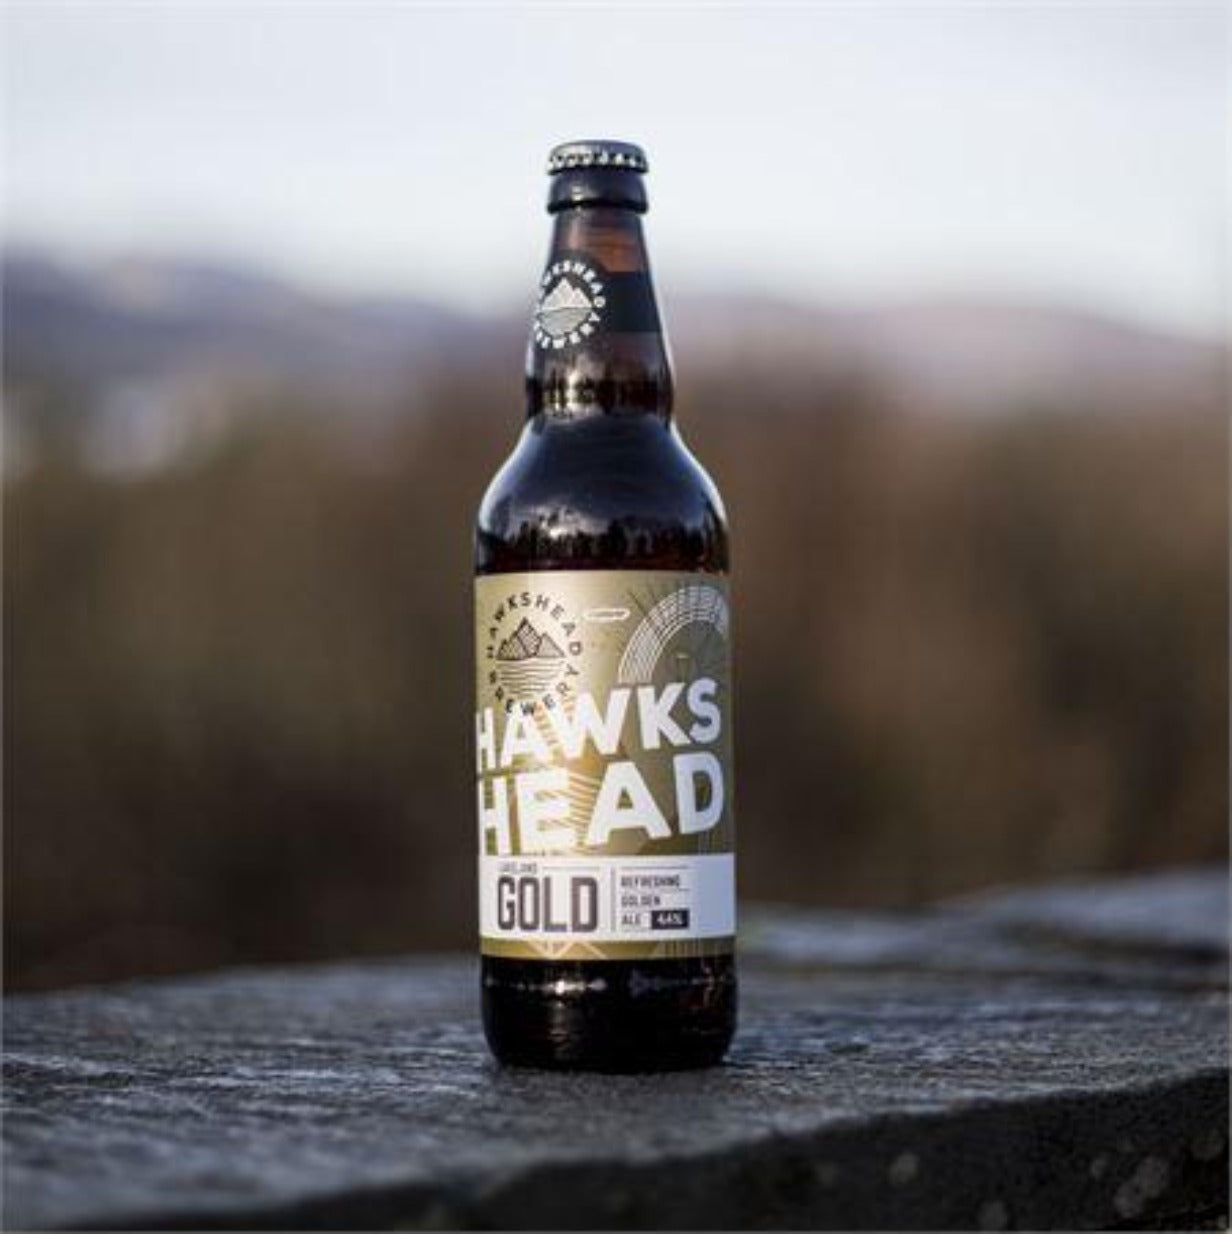 Hawskhead Brewery Lakeland Gold 8x500ml Bottles